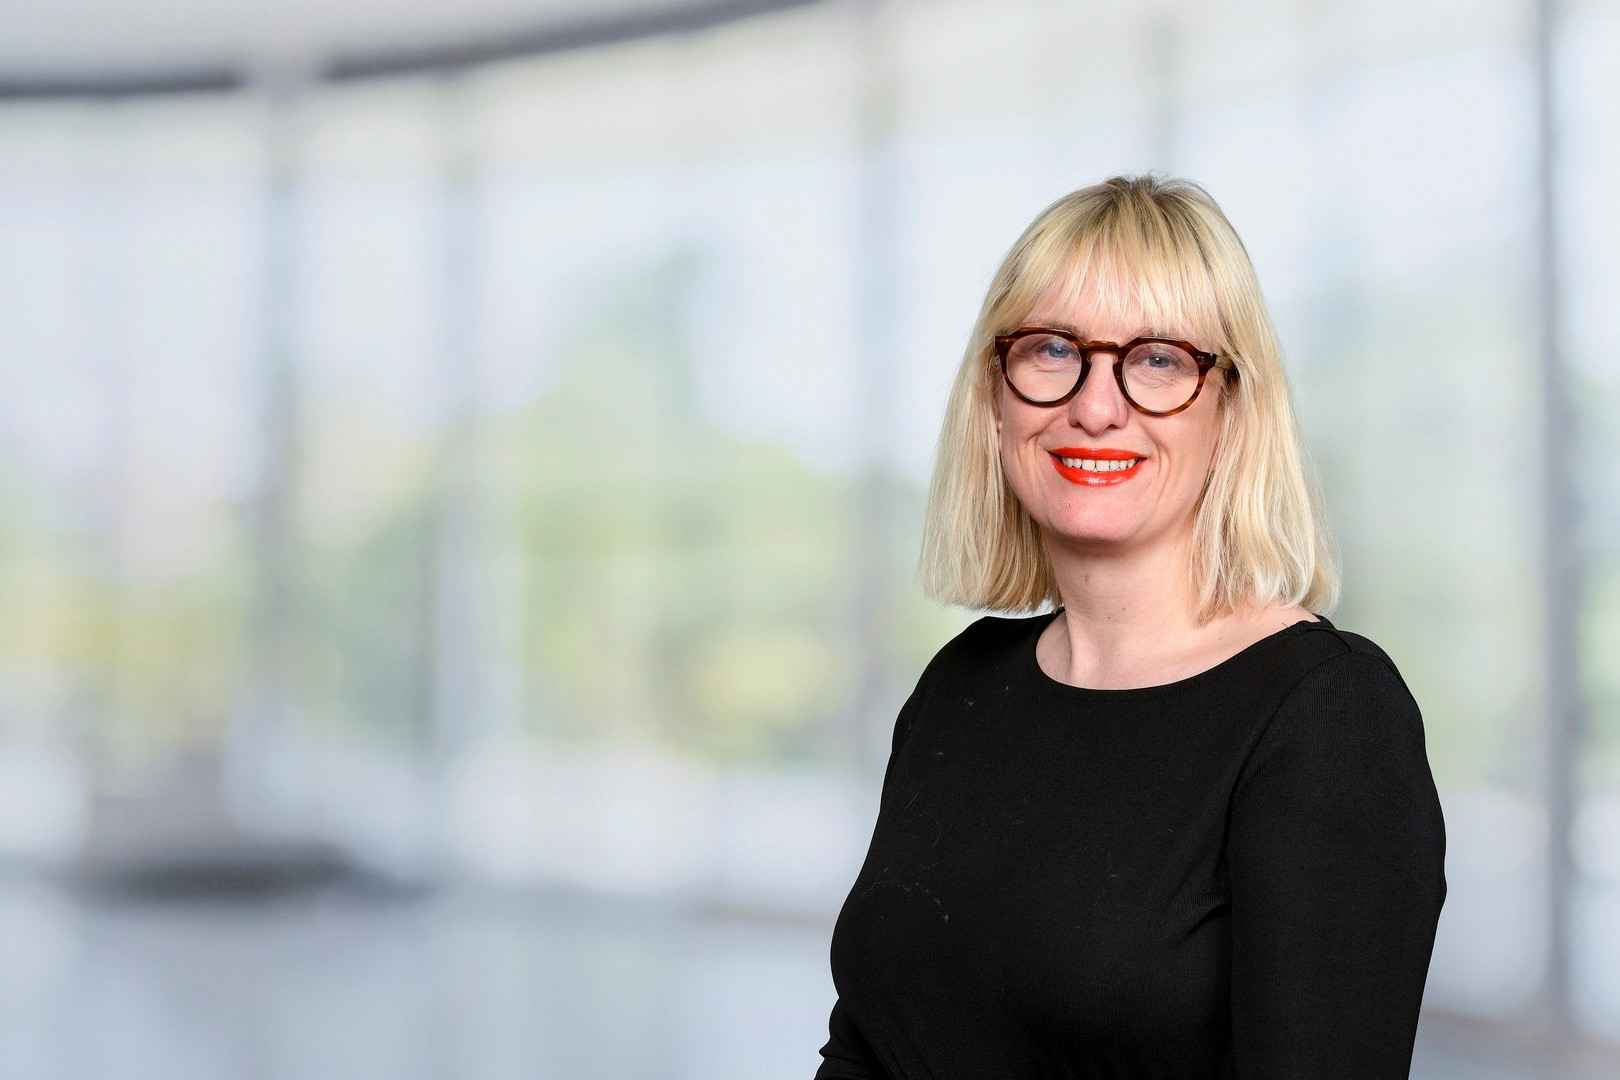 Clare Bailey is a Director in Savills Commercial Research team